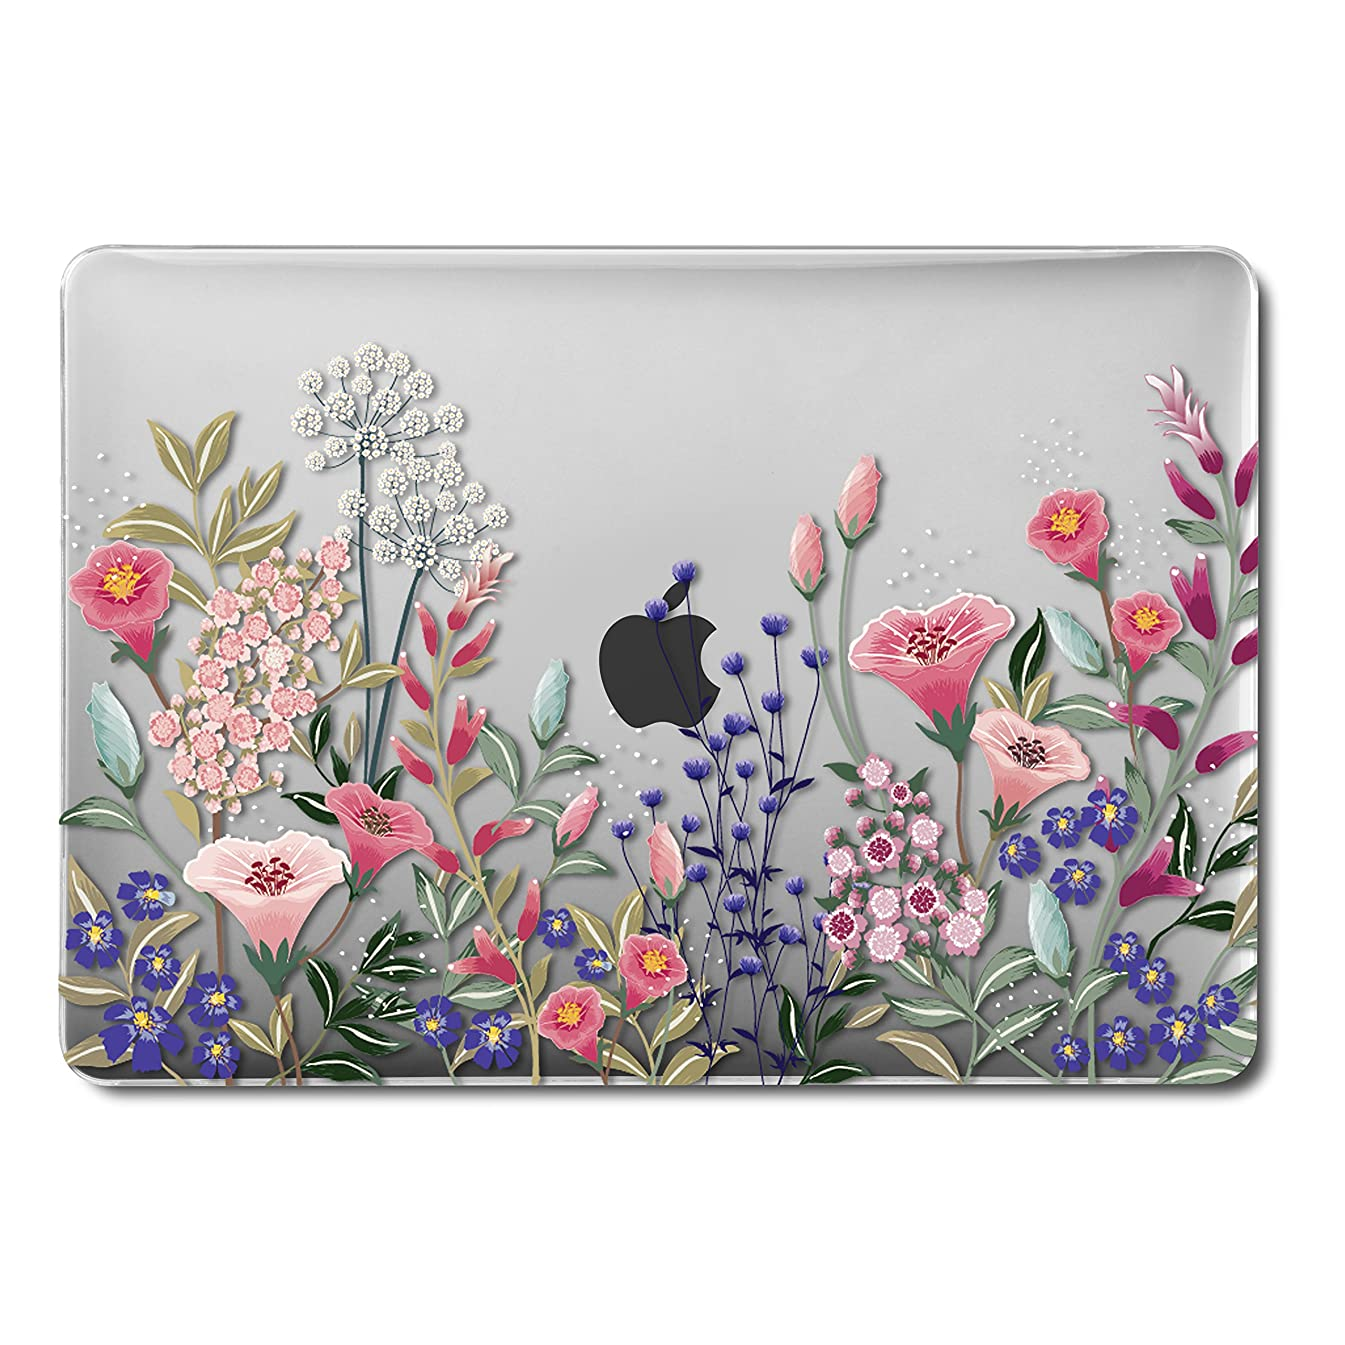 GMYLE MacBook Pro 13 Inch Case 2015 A1502 NO CD ROM, Soft-Touch Plastic Hard Clear Cover for Apple Mac Pro 13